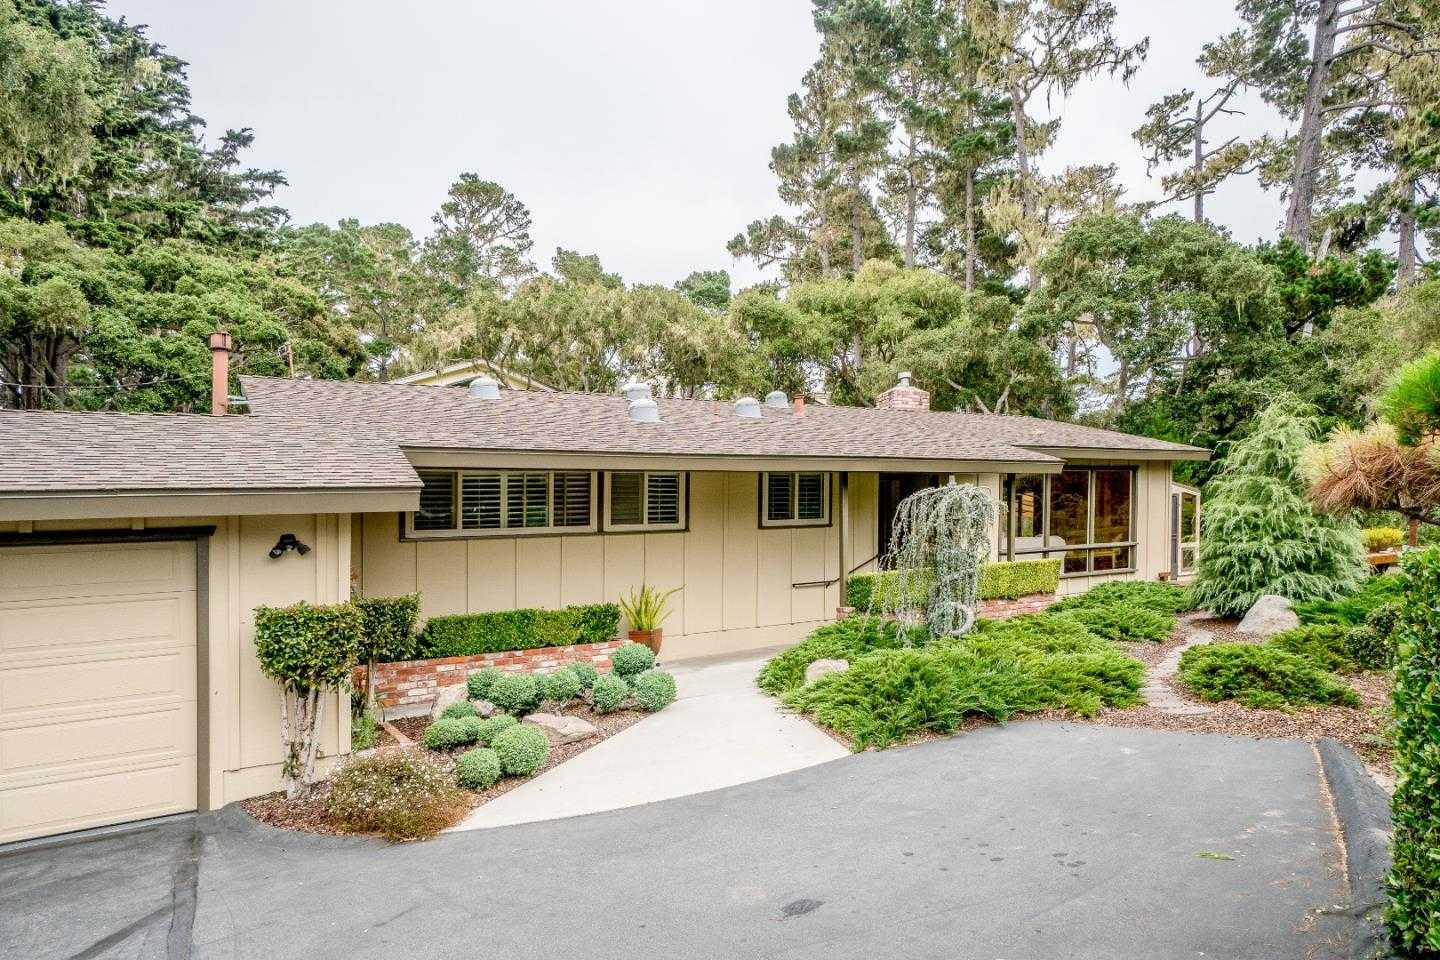 $1,075,000 - 3Br/2Ba -  for Sale in Pebble Beach